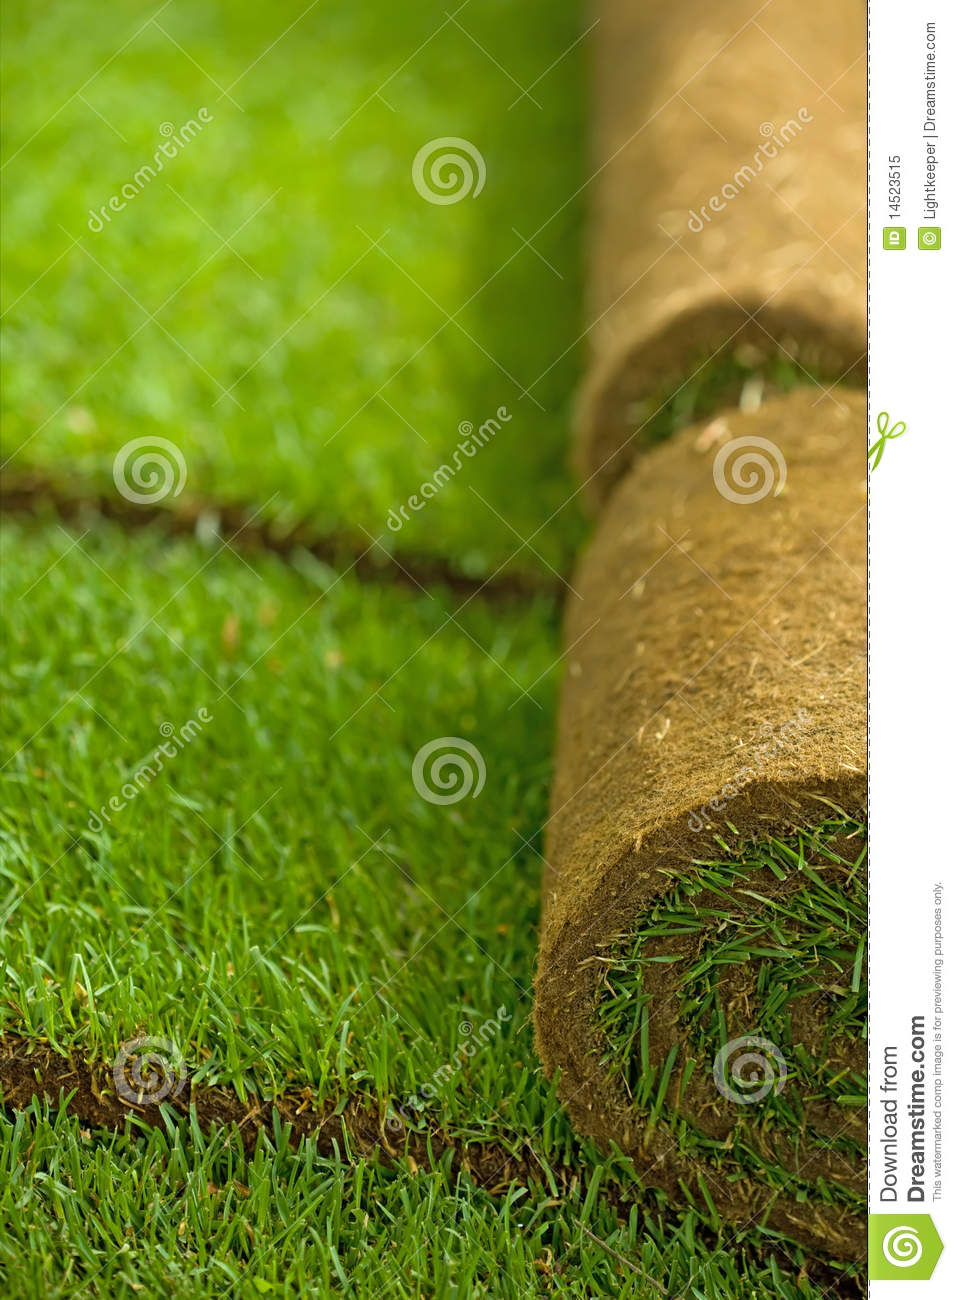 Turf Management types of majors